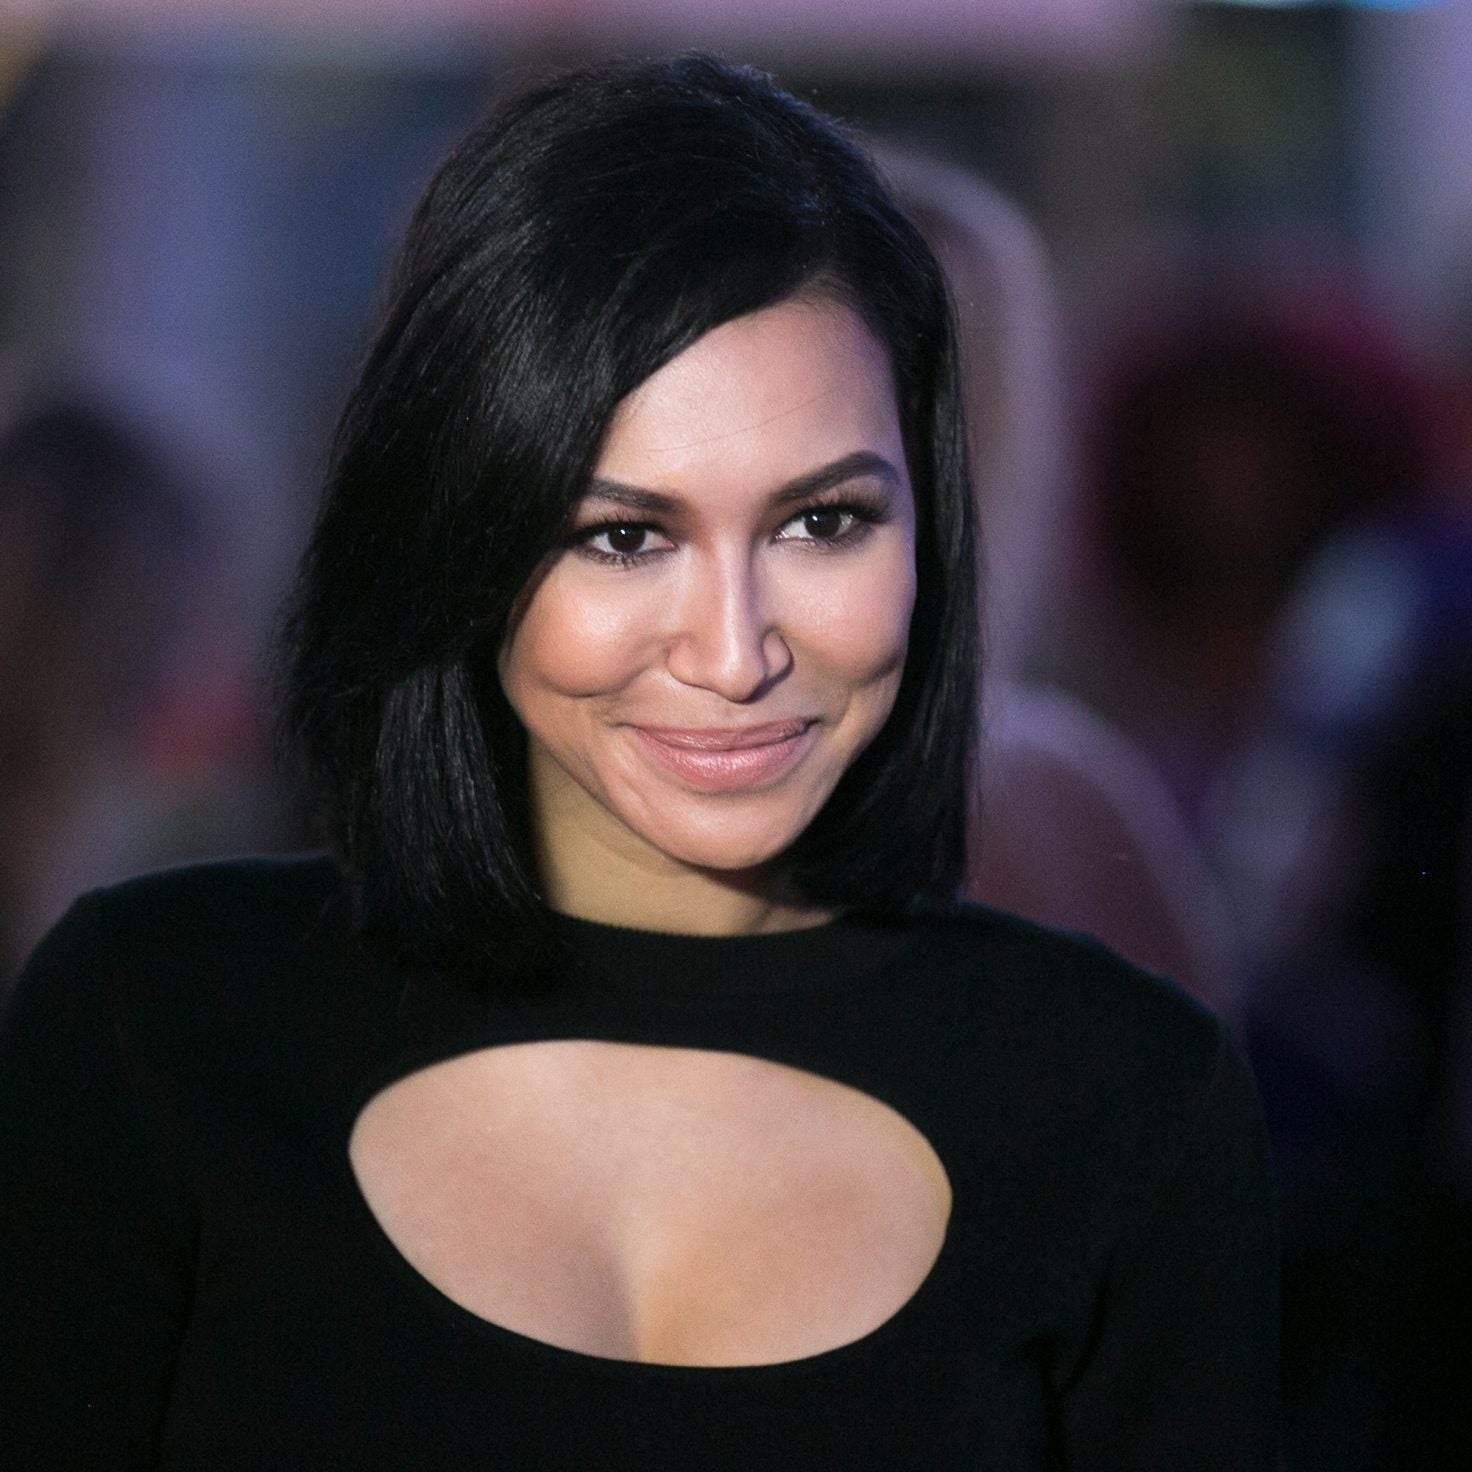 Body Recovered By Authorities After 'Glee' Star Naya Rivera Disappears